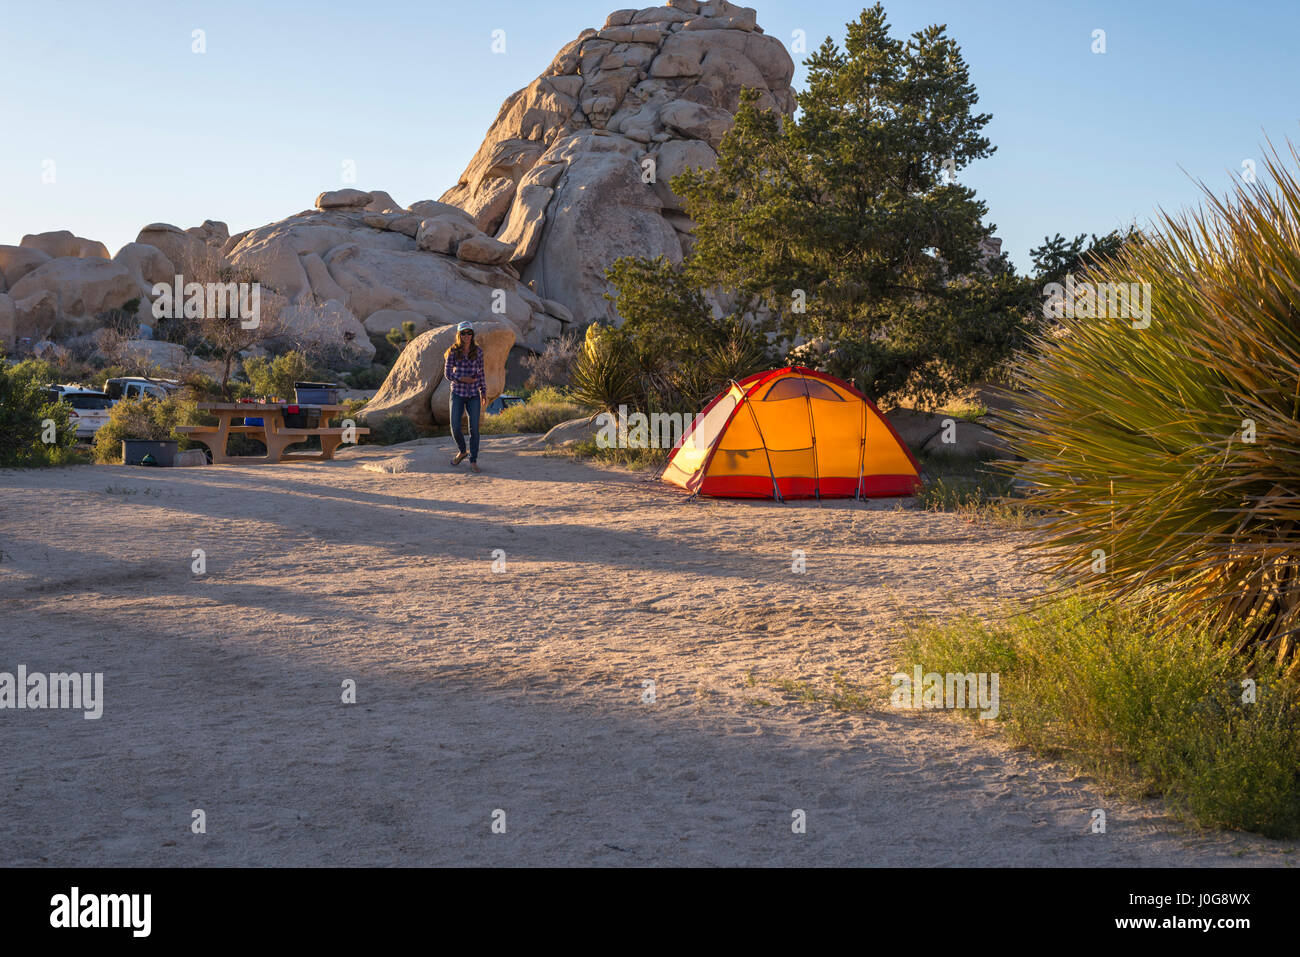 Tente de camping au camping. Joshua Tree National Park, Californie, USA. Photo Stock